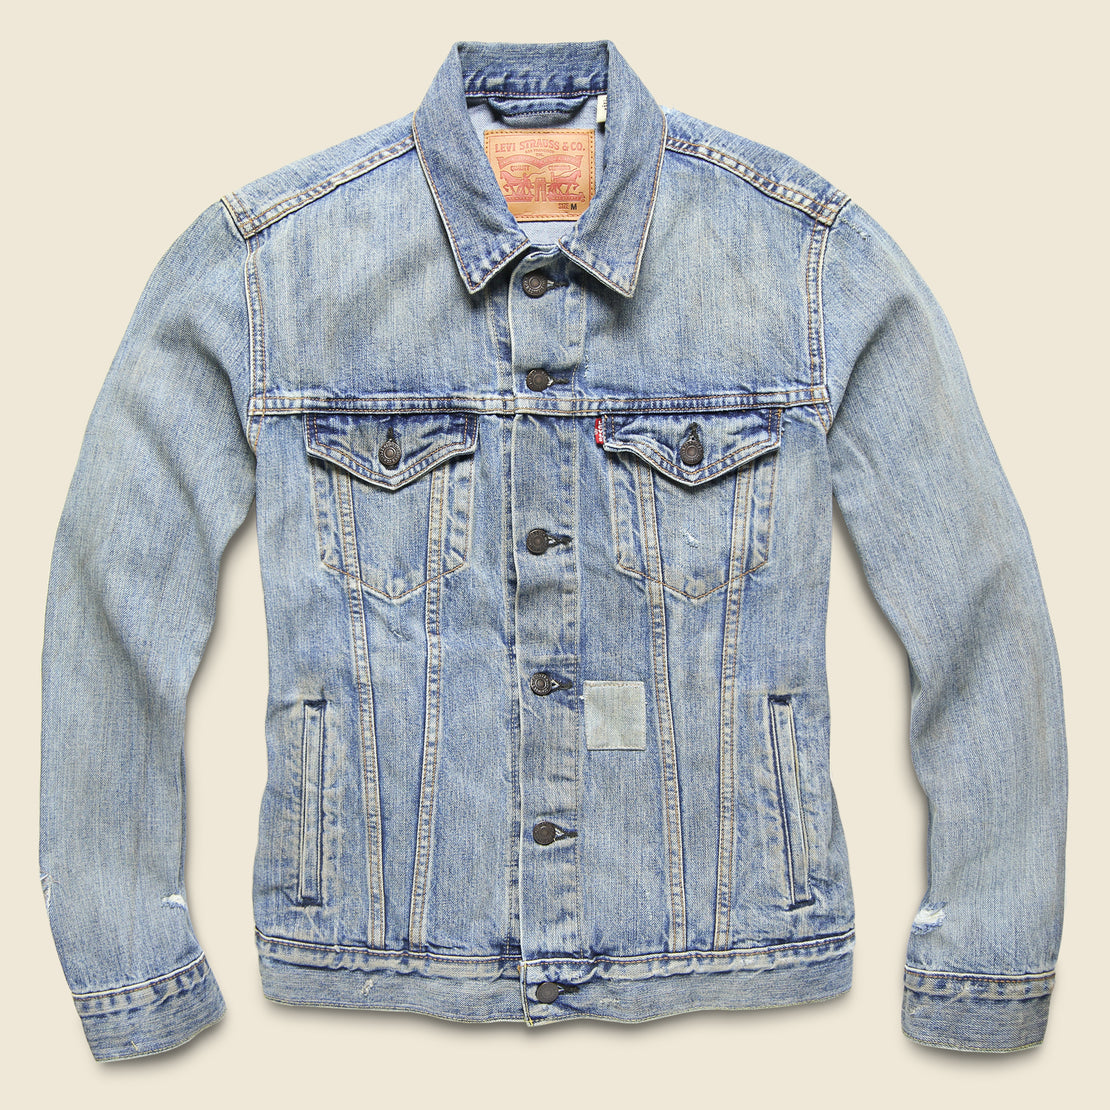 Levi's Red Tab Trucker Jacket - Shadow Puzzle